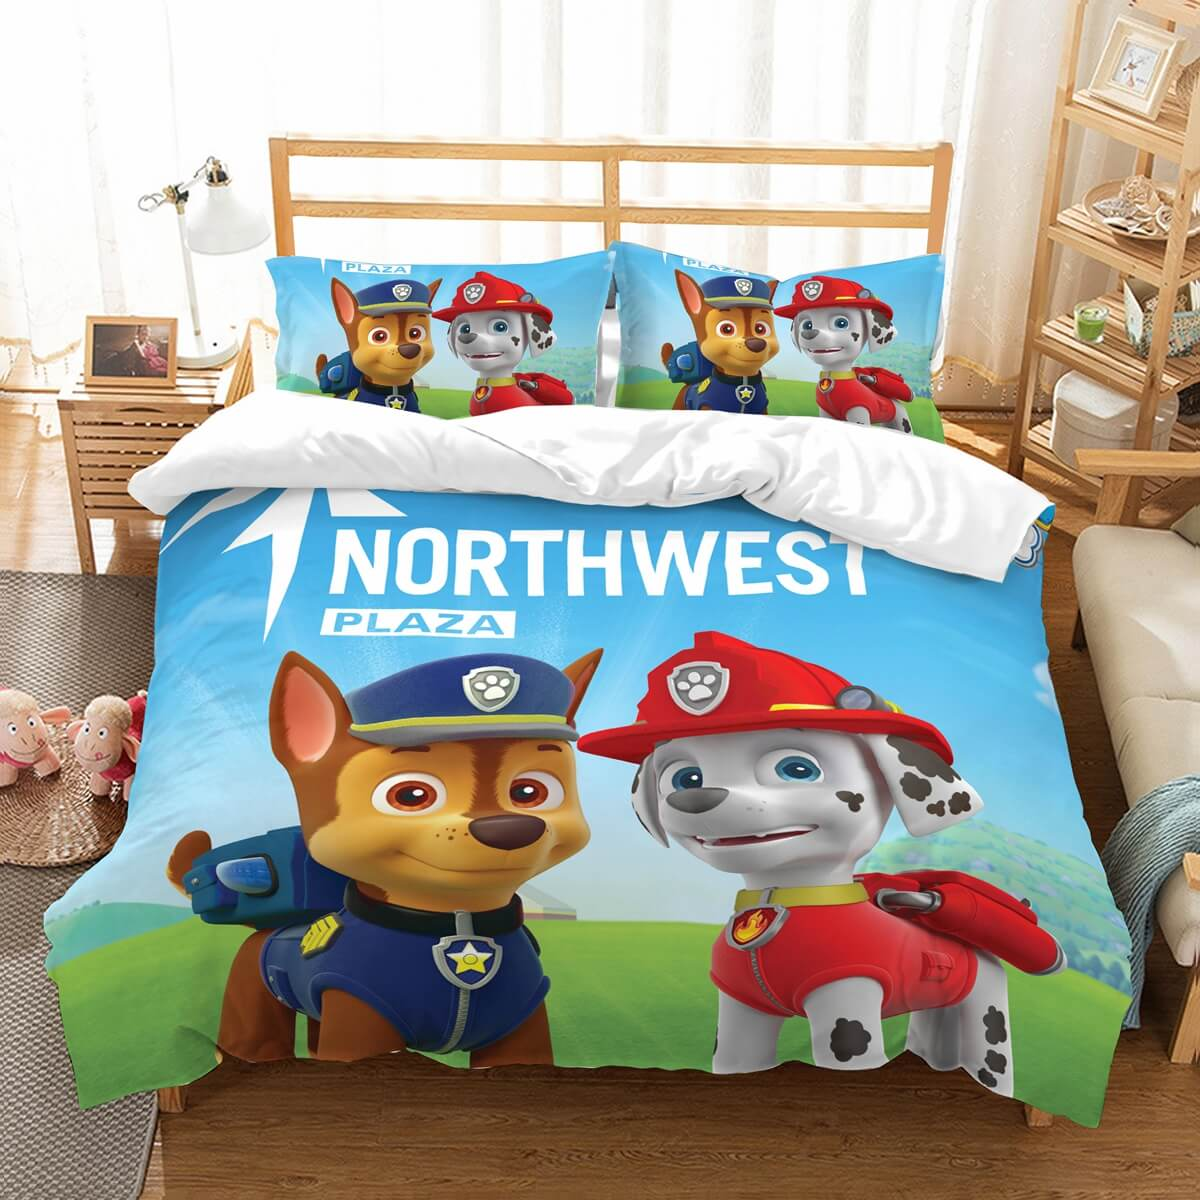 3D Customize PAW Patrol Bedding Set Duvet Cover Set Bedroom Set Bedlinen